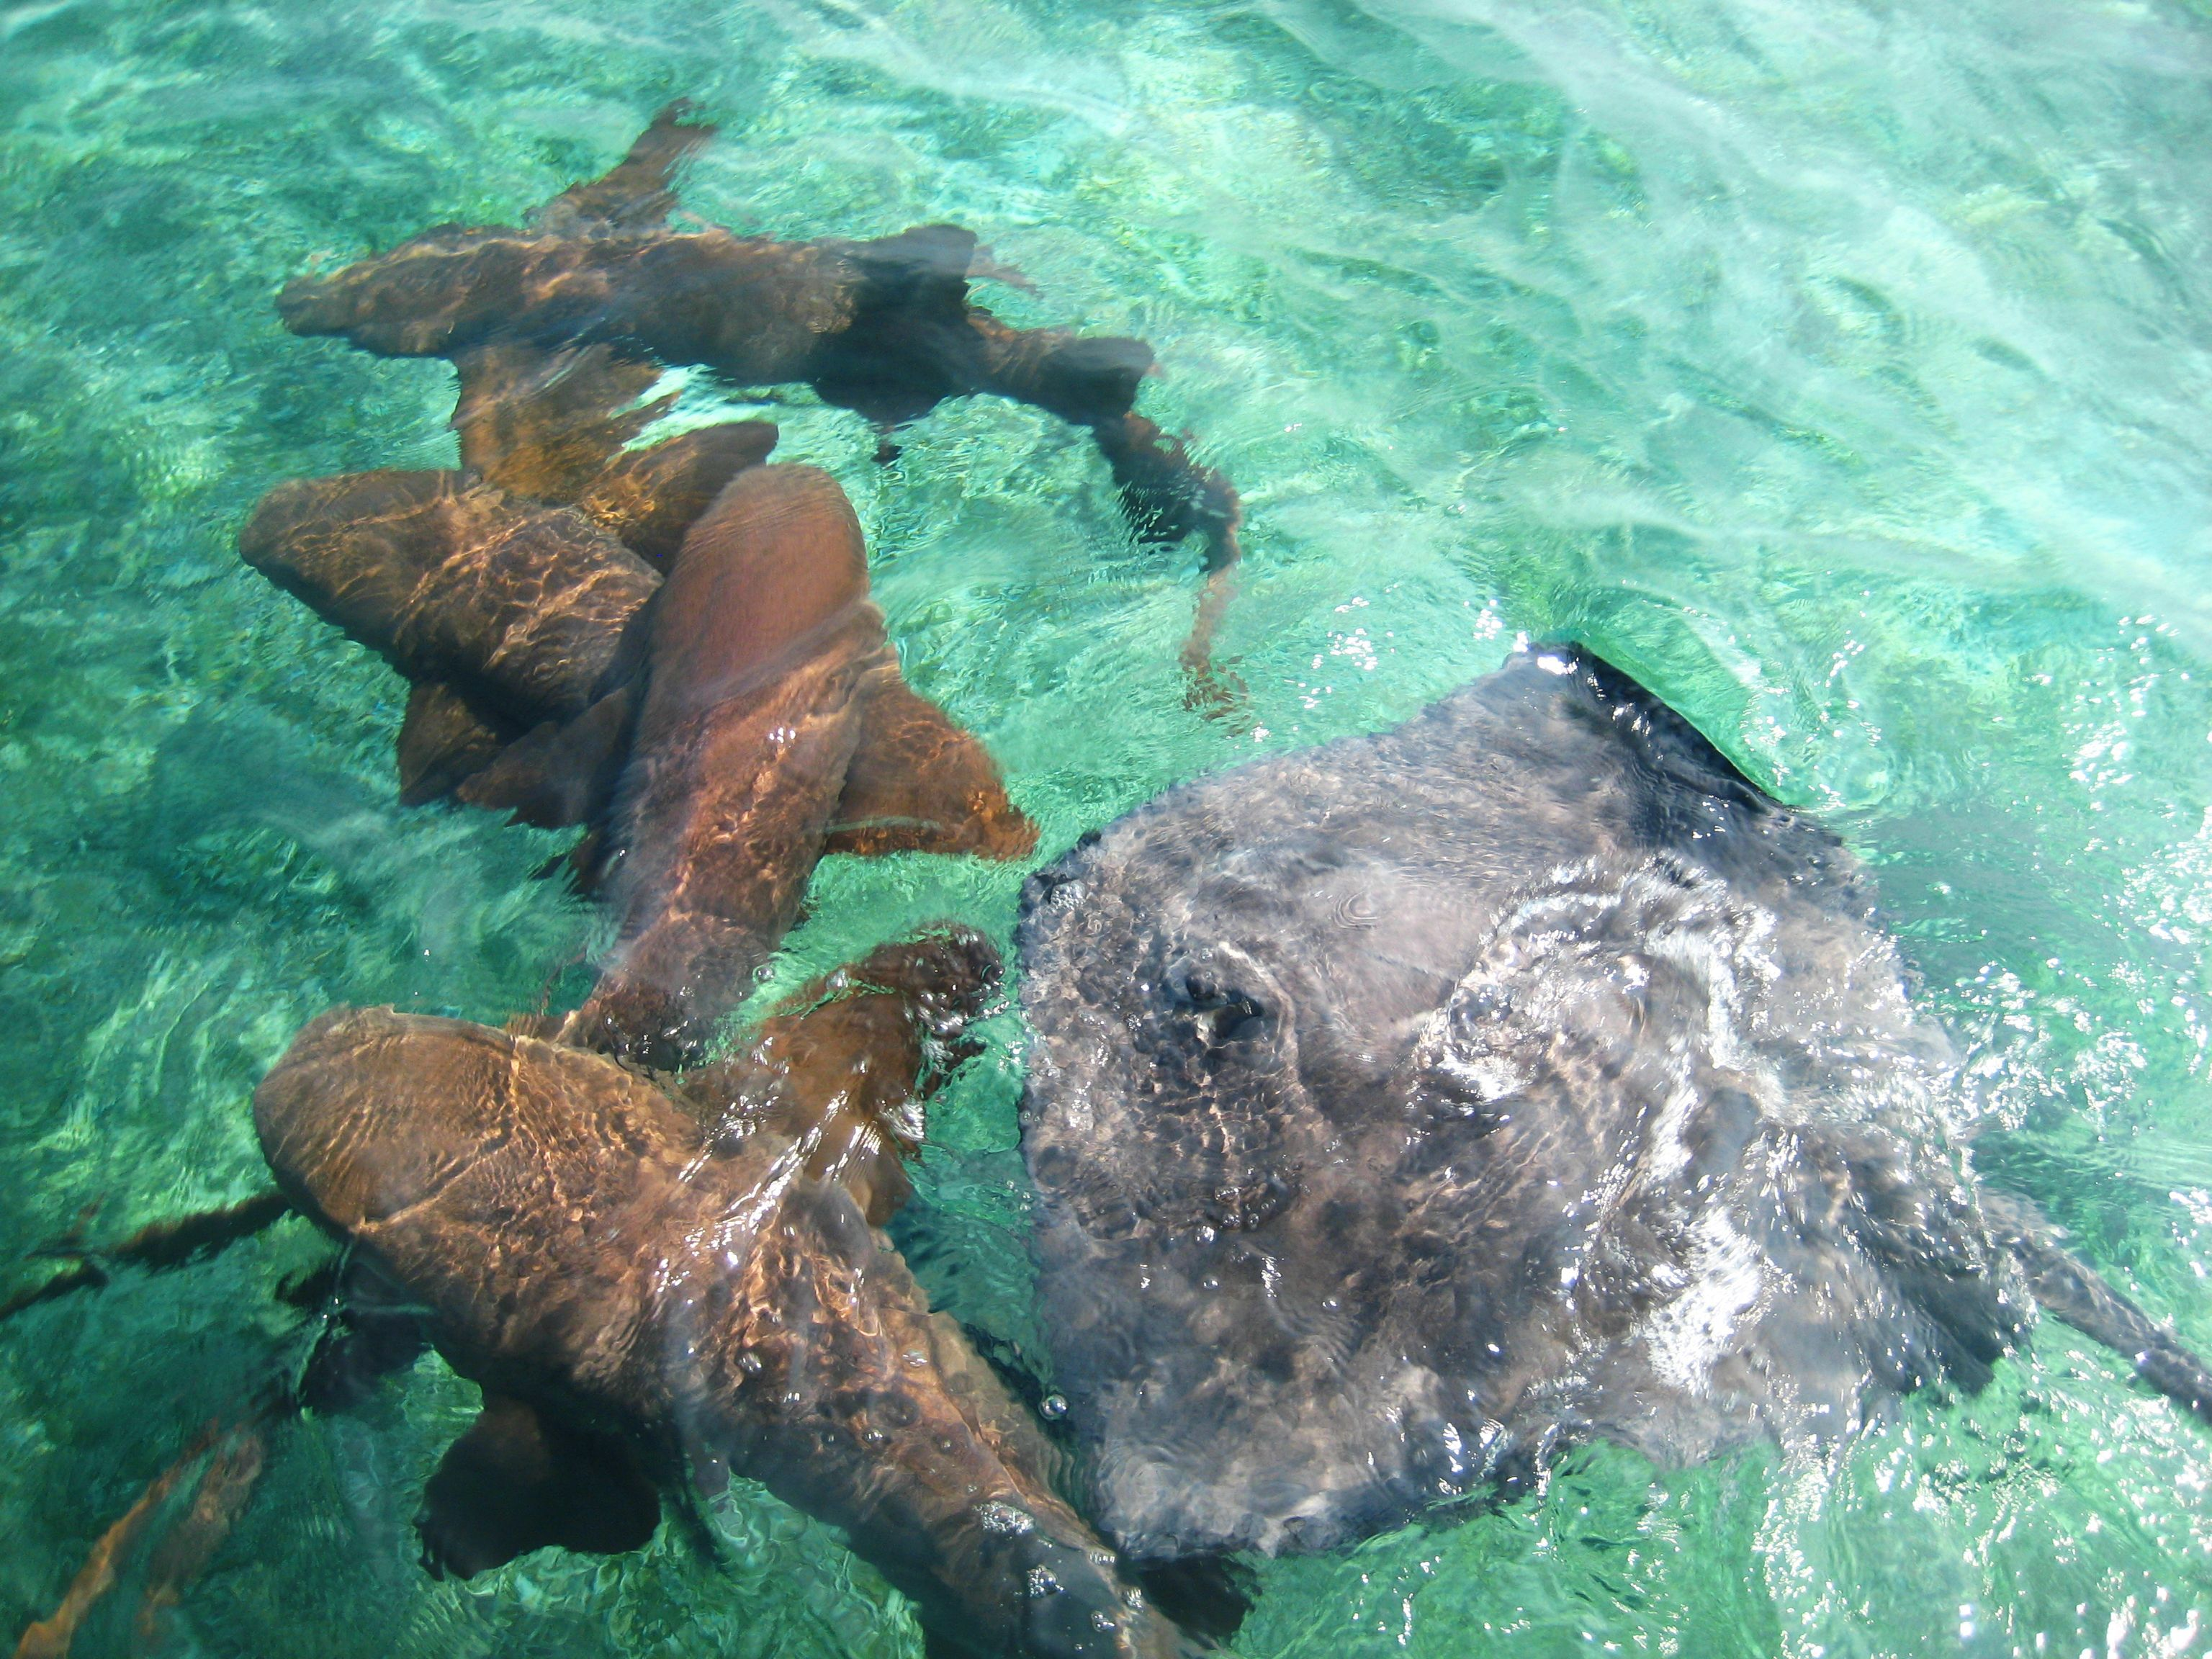 Sharks and stingrays in the waters of the cayes in Belize